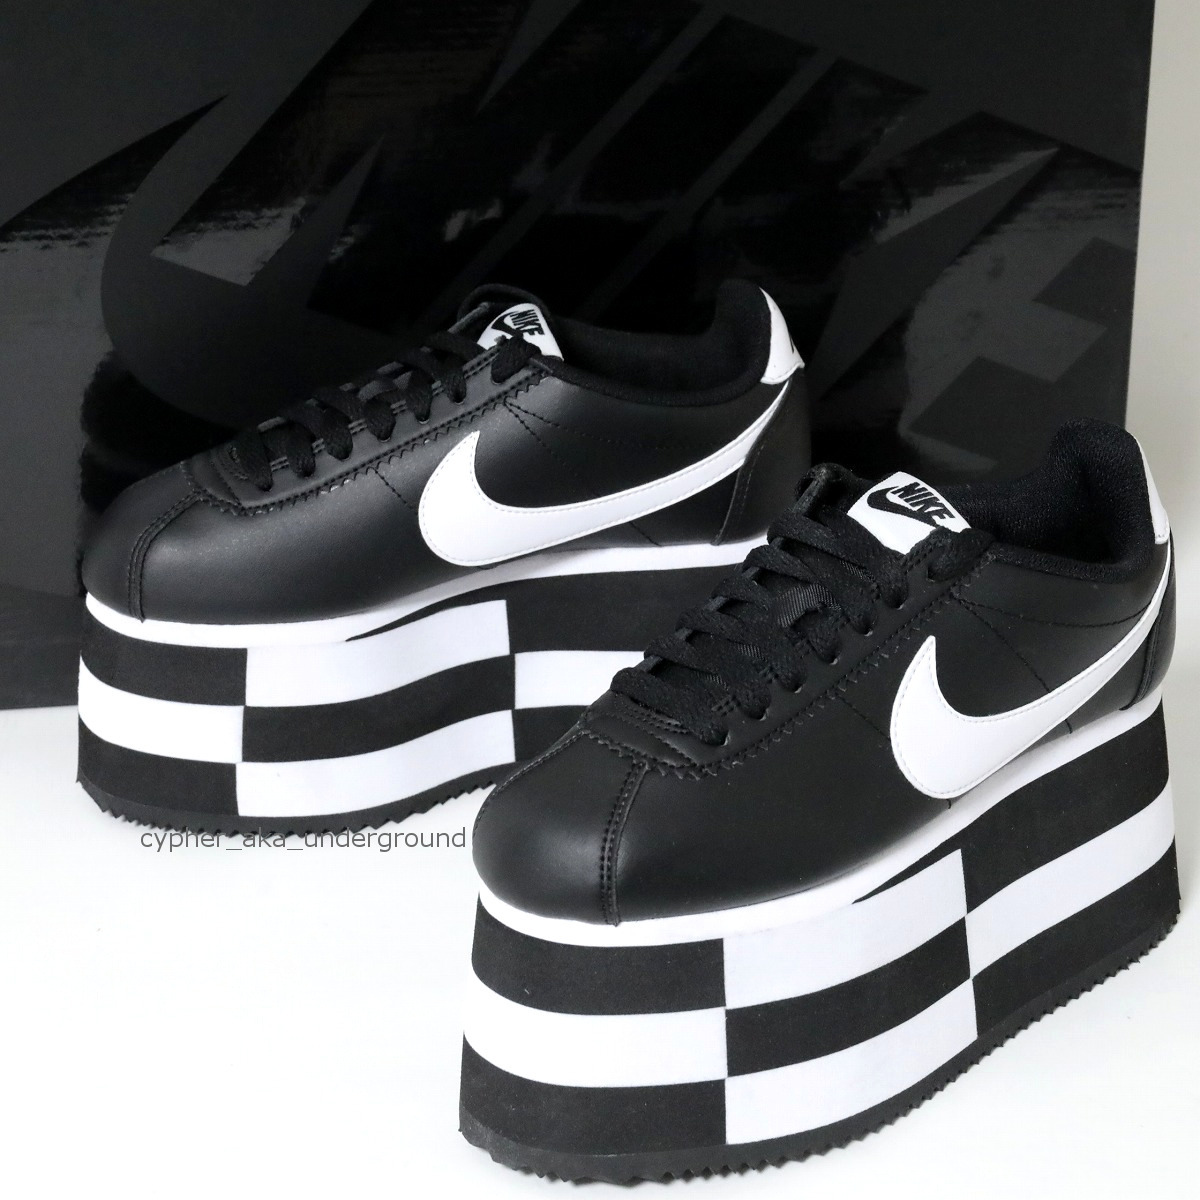 new product c24fe a0c21 代購代標第一品牌- 樂淘letao - 18AW COMME des GARCONS × NIKE ...